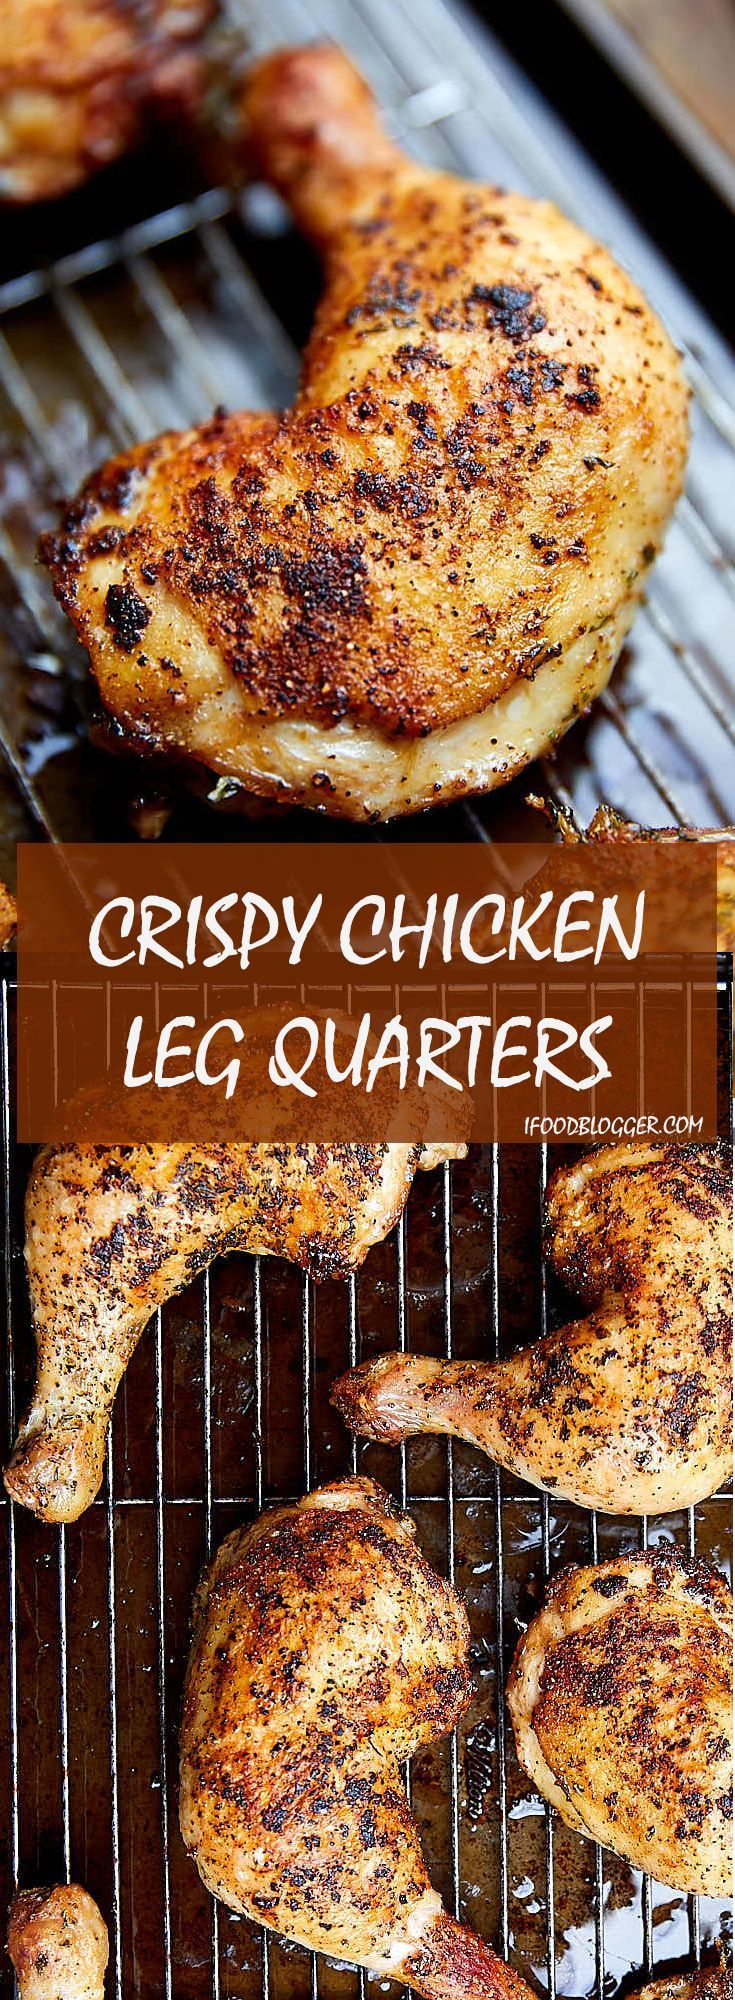 and fall-off-the-bone tender oven roasted chicken leg quarters. Very easy to make and perfect every time. |